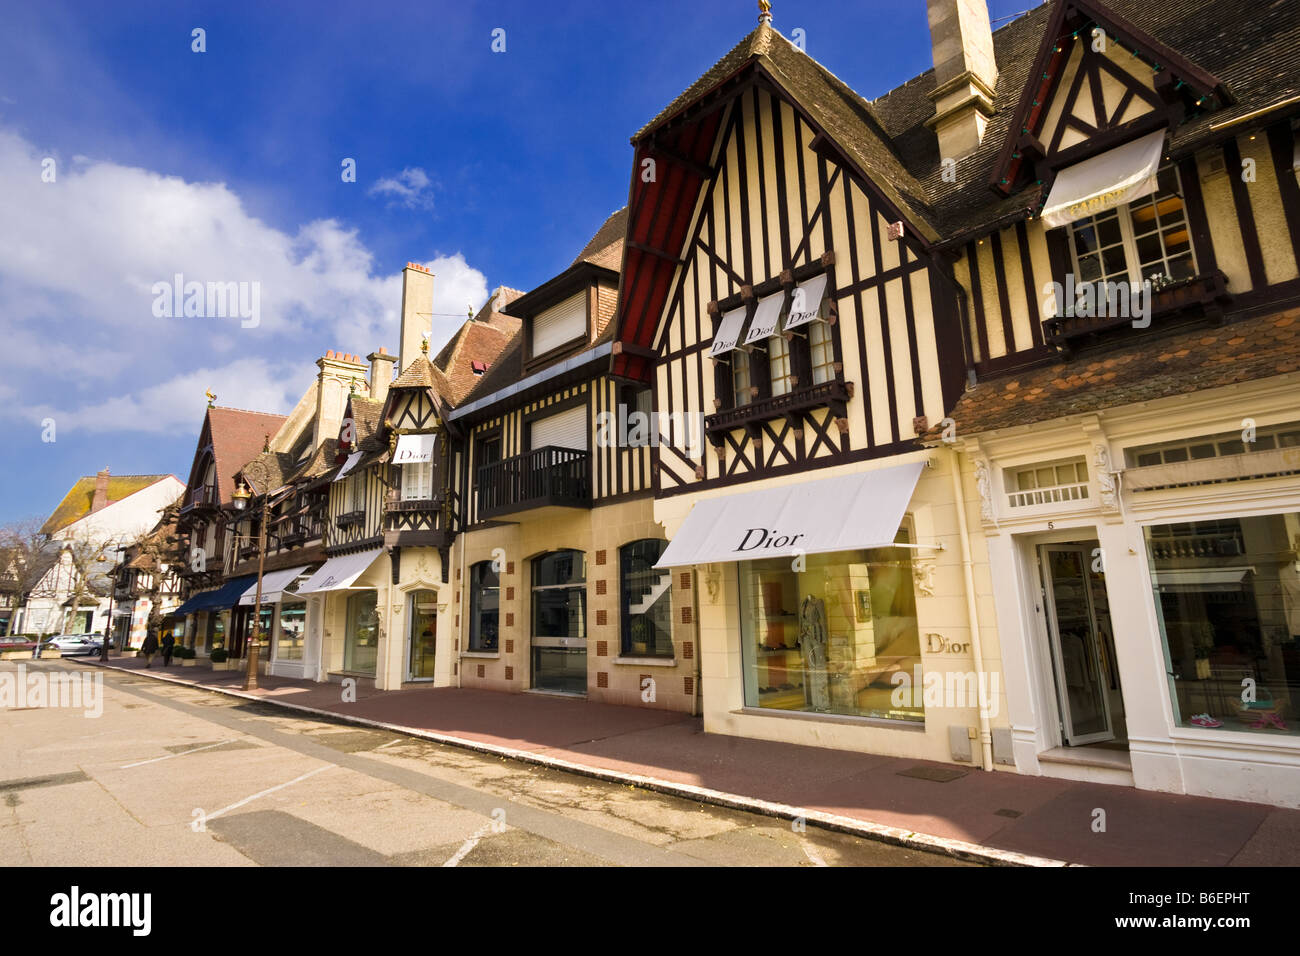 Deauville, Normandy, France - Christian Dior retail store and other luxury stores in the upscale resort town - Stock Image